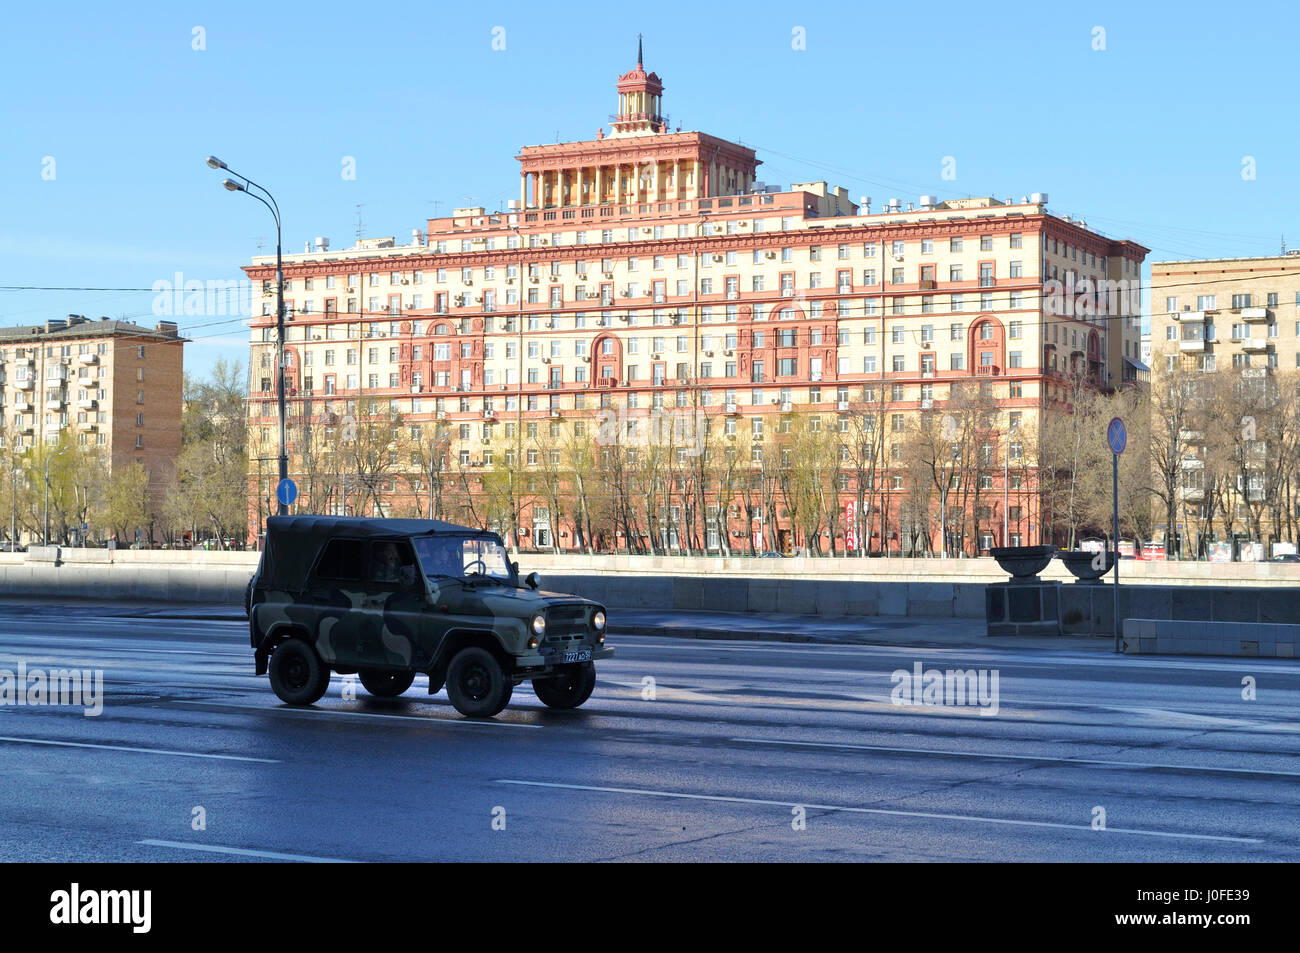 Street view with Stalinist architecture in Moscow. Stock Photo